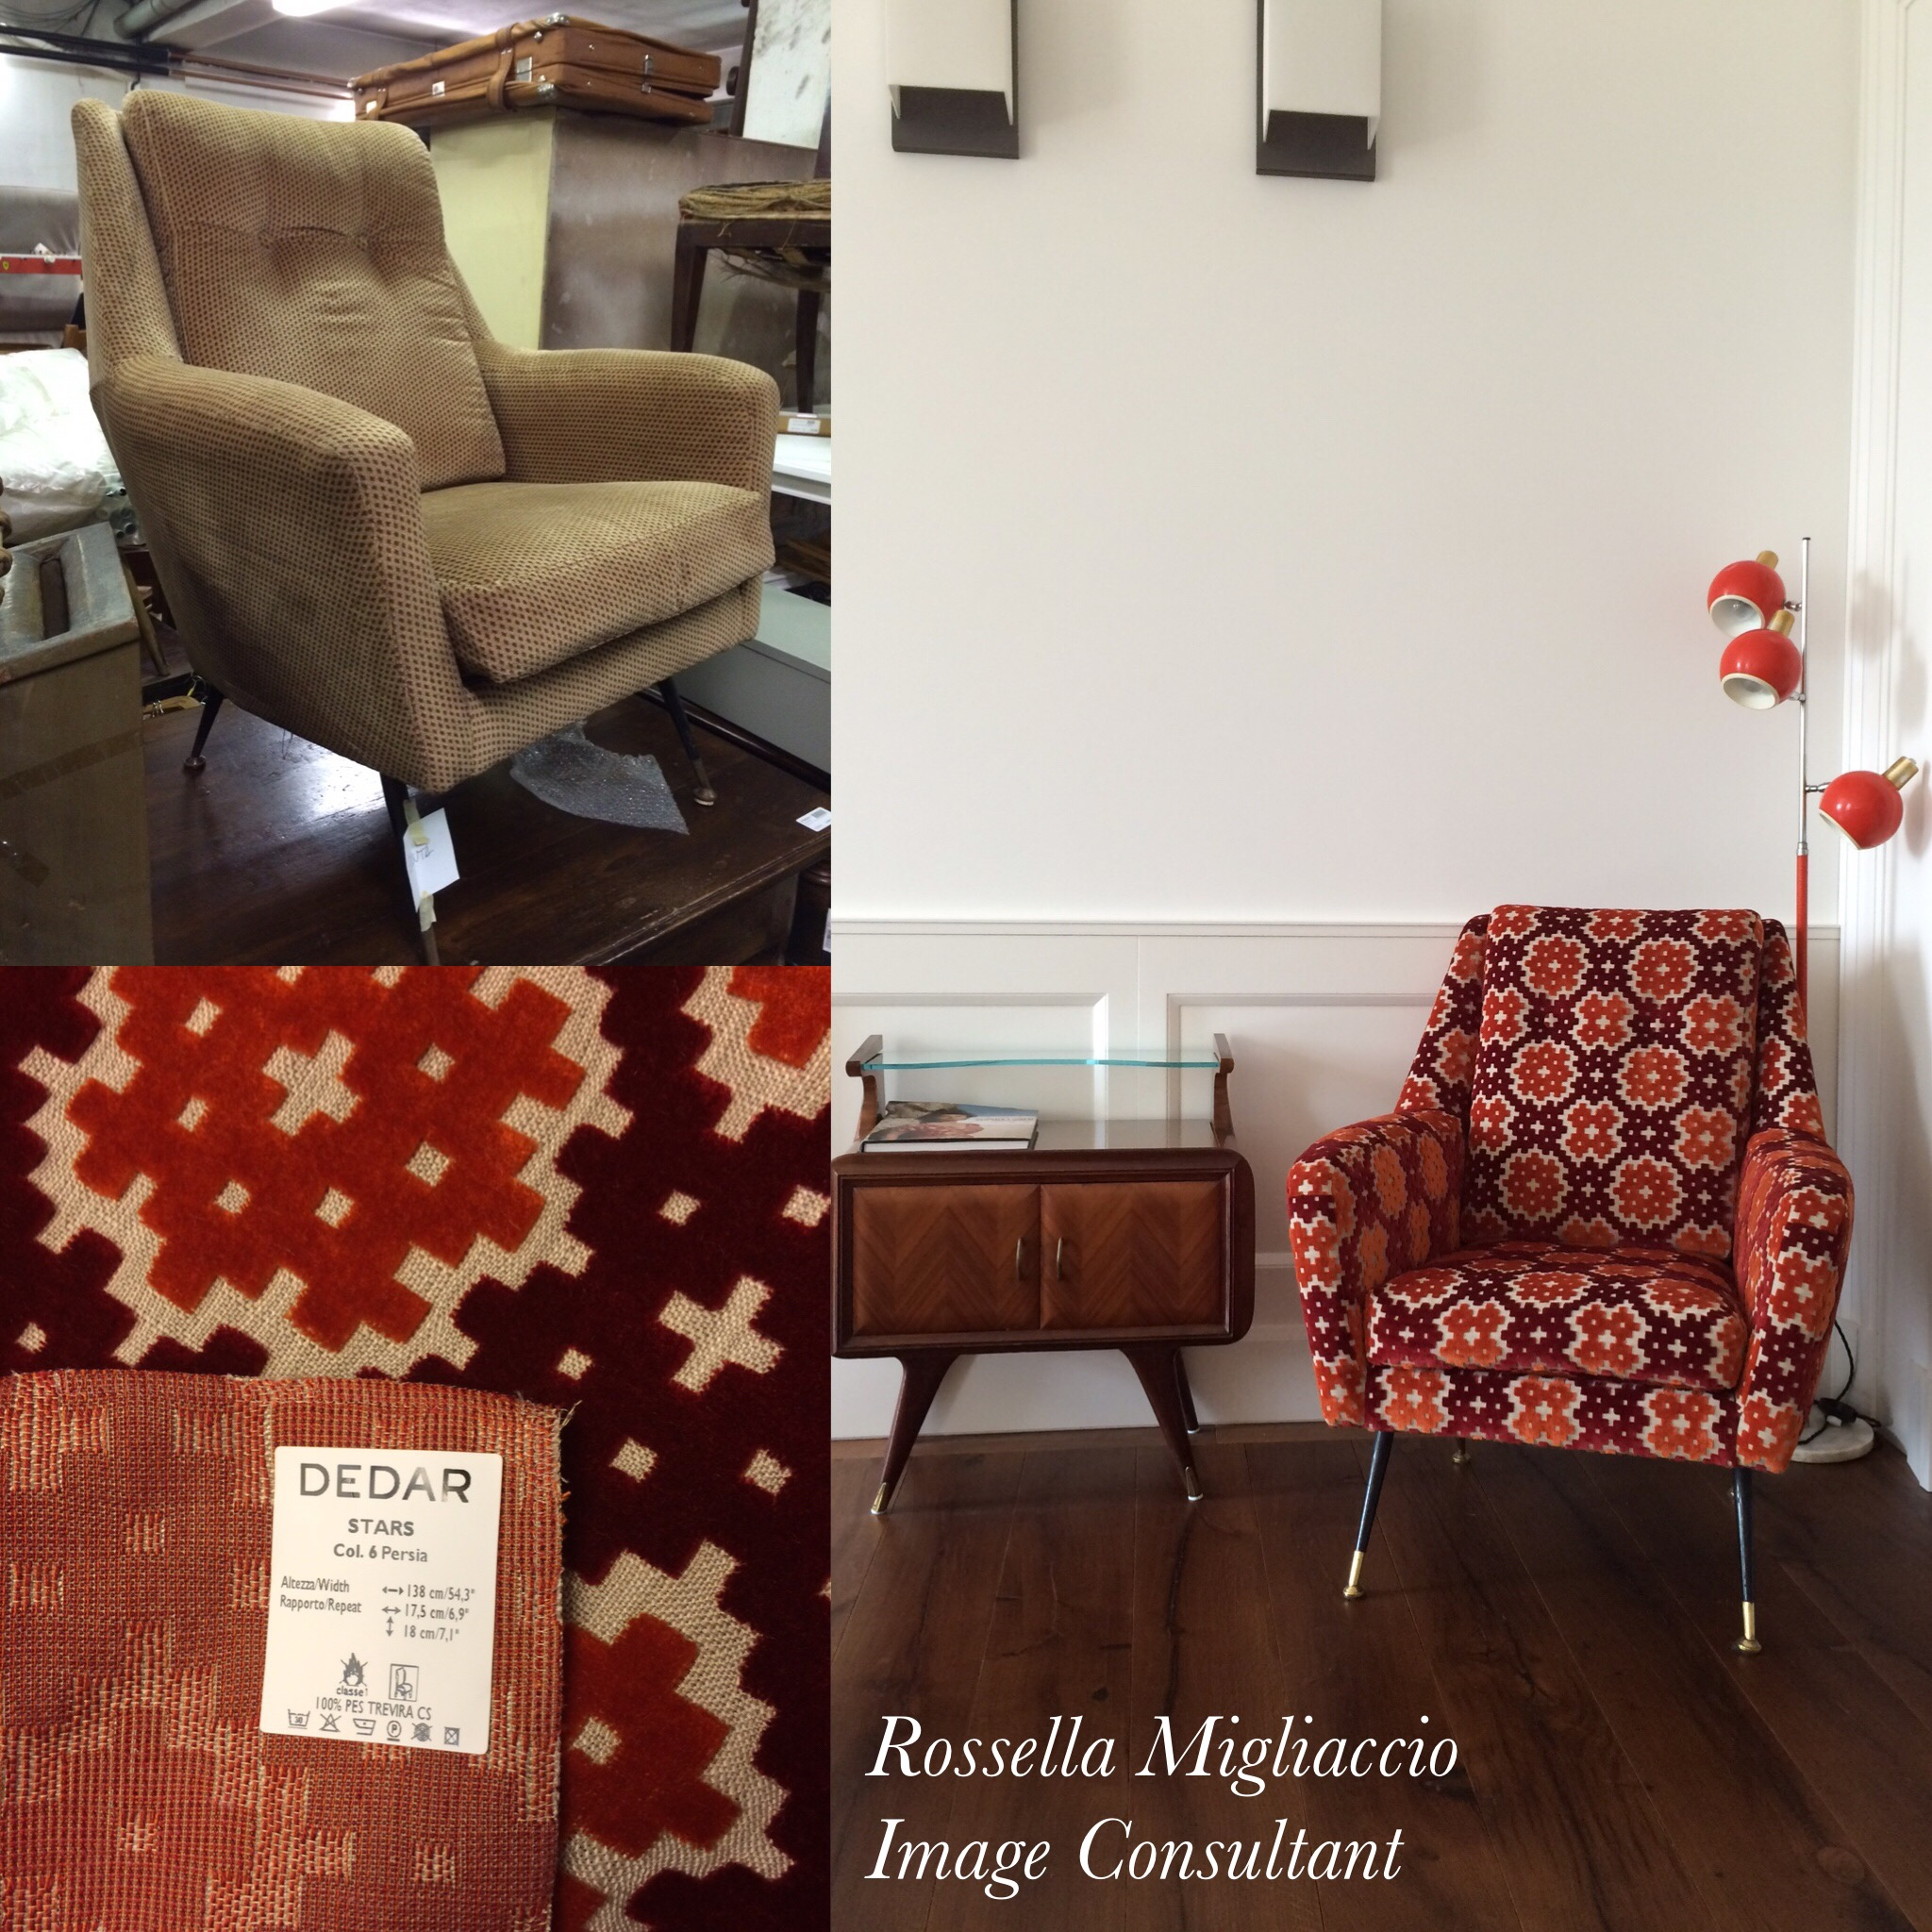 Armchair 50s before-after: how I found it in a flea market and how I transformed it (also thanks to a beautiful fabric Dedar Milano)